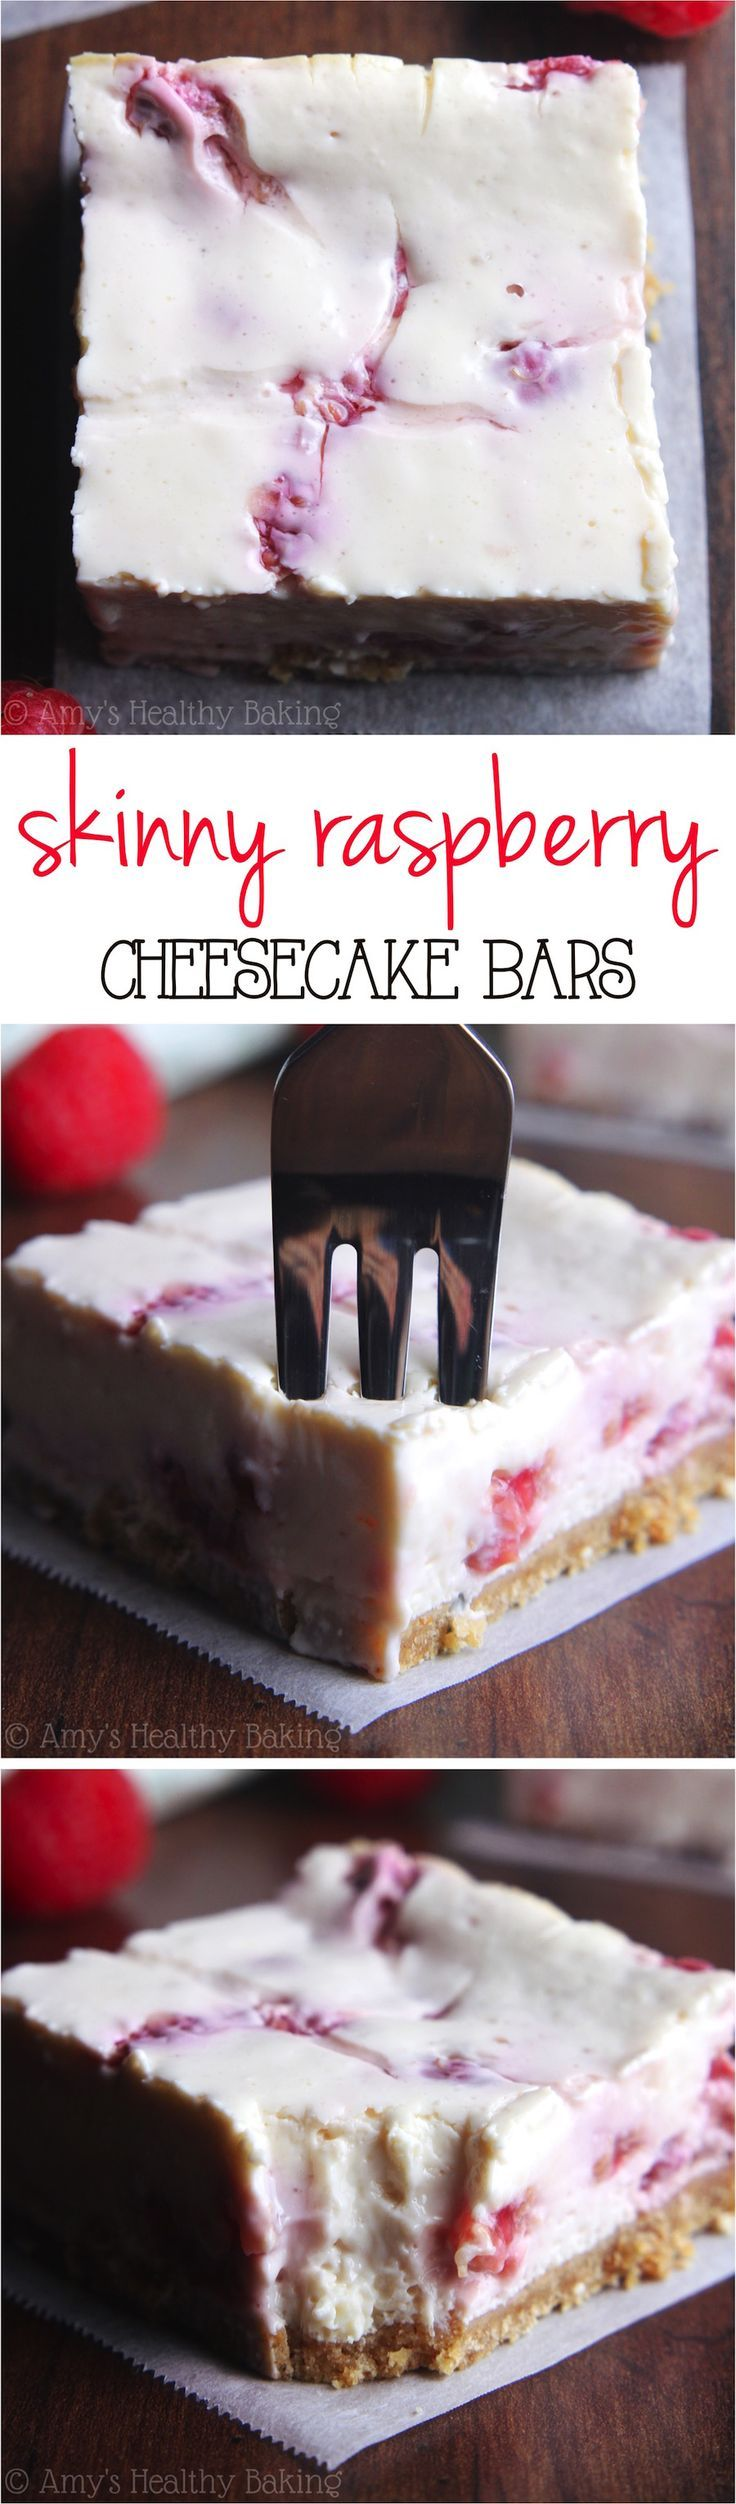 Skinny Raspberry Cheesecake Bars -- SO easy to make & packed with 5g of protein! Only 97 calories!